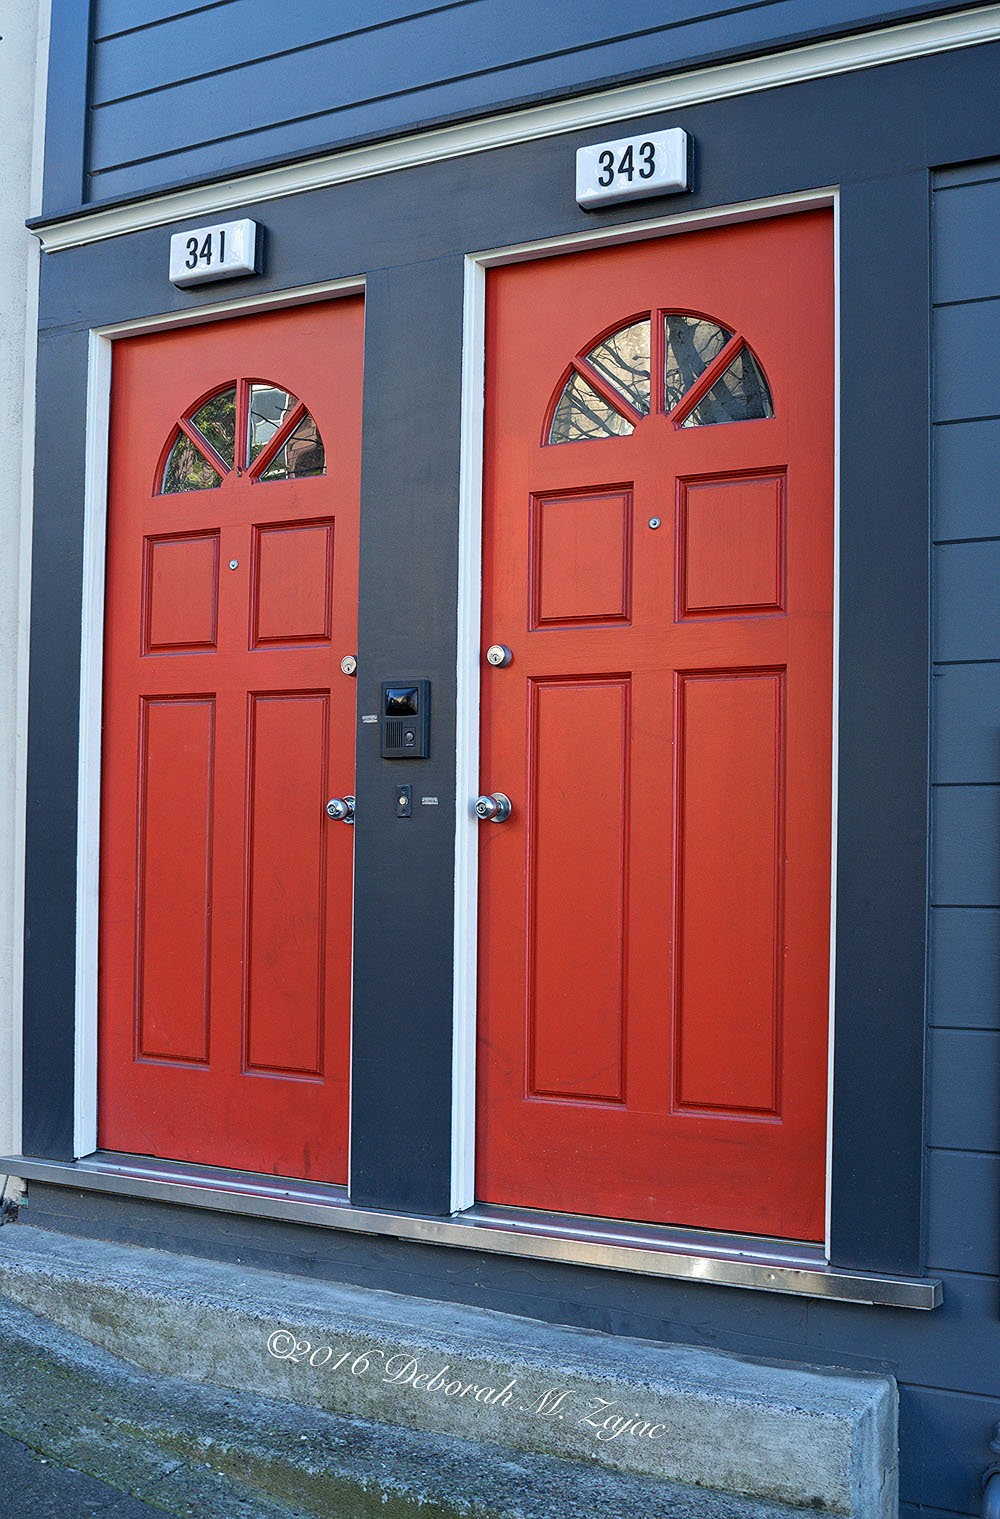 N° 341 and N° 343 Red Doors